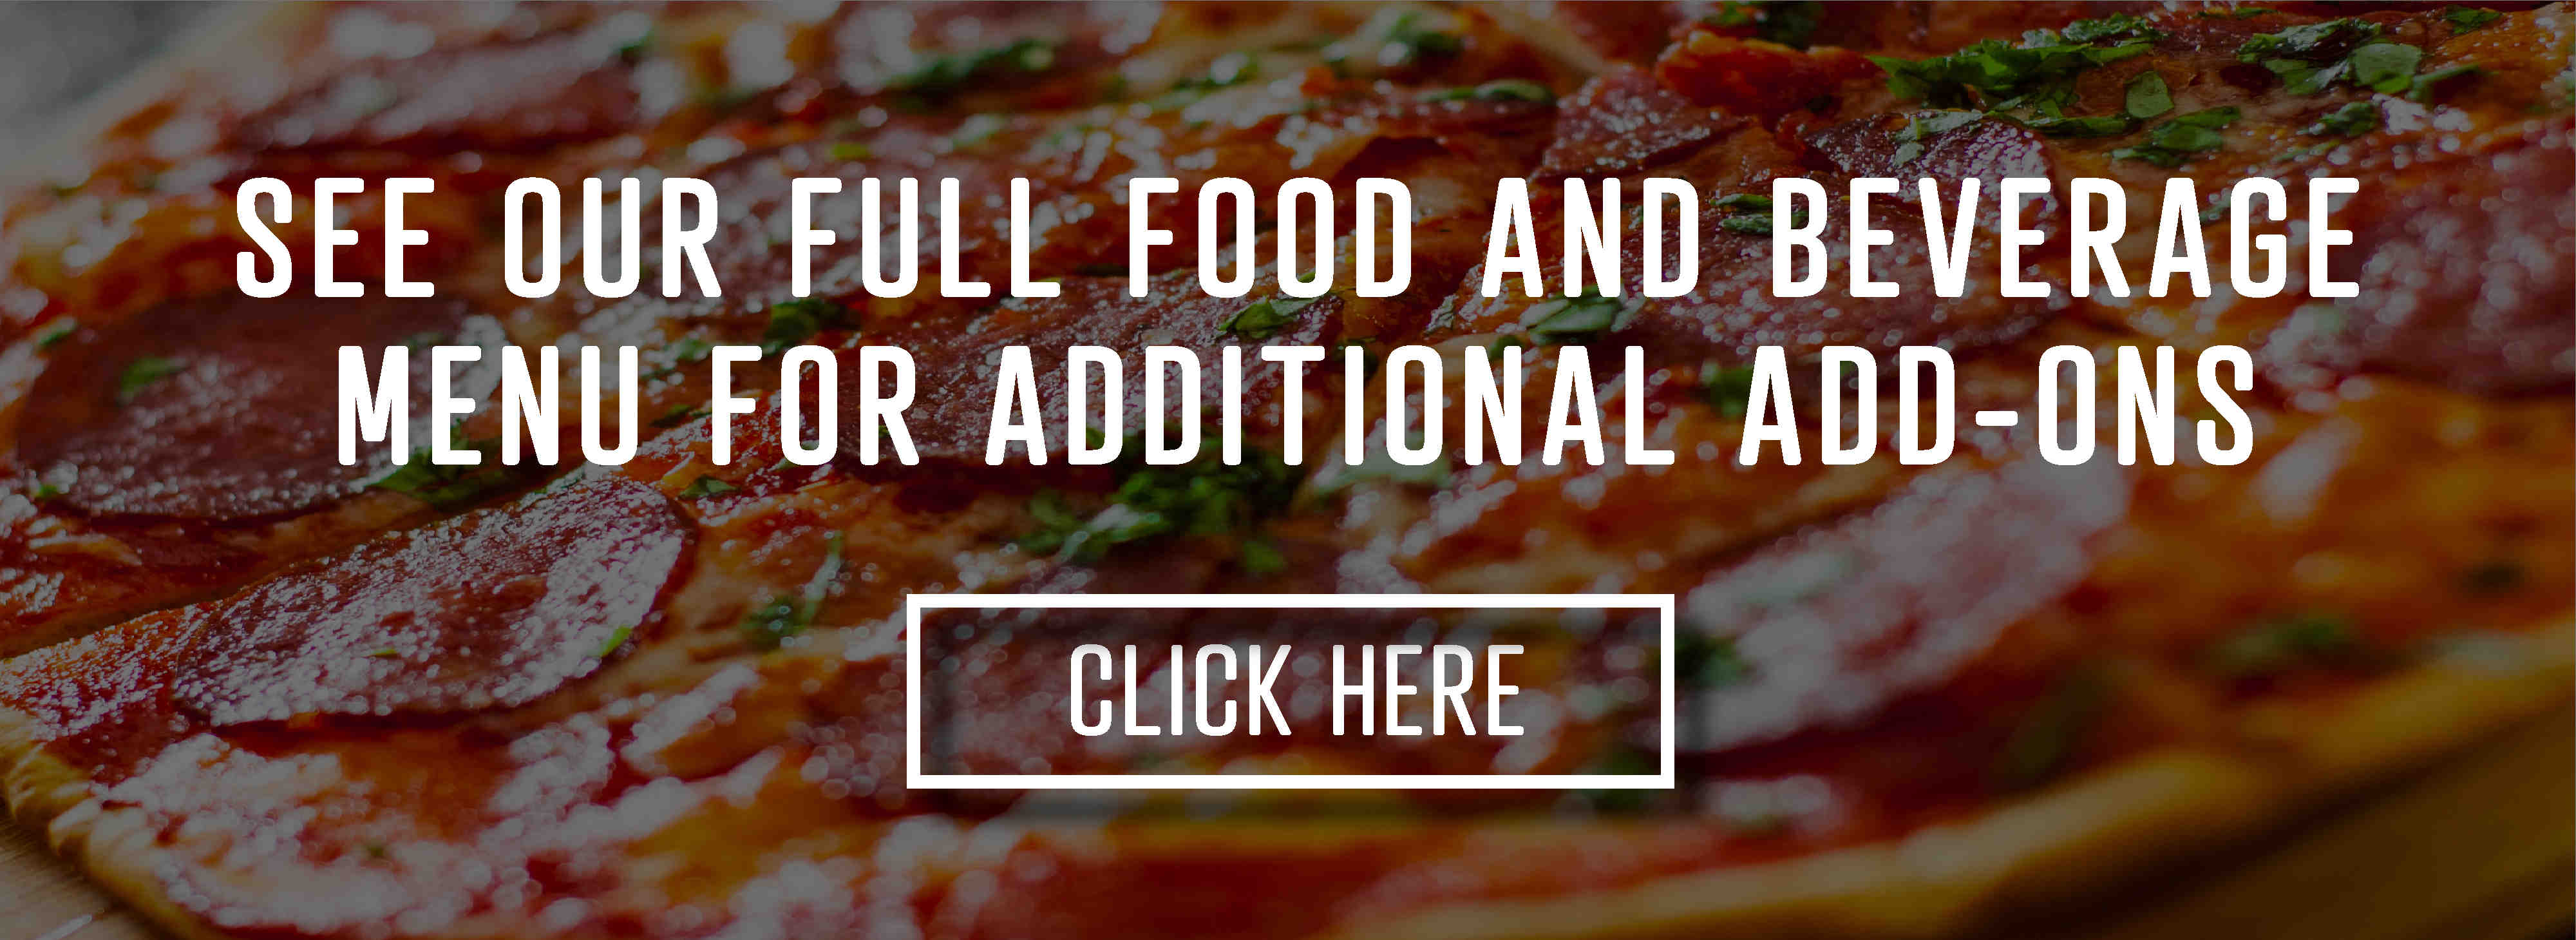 Food and beverage - click here